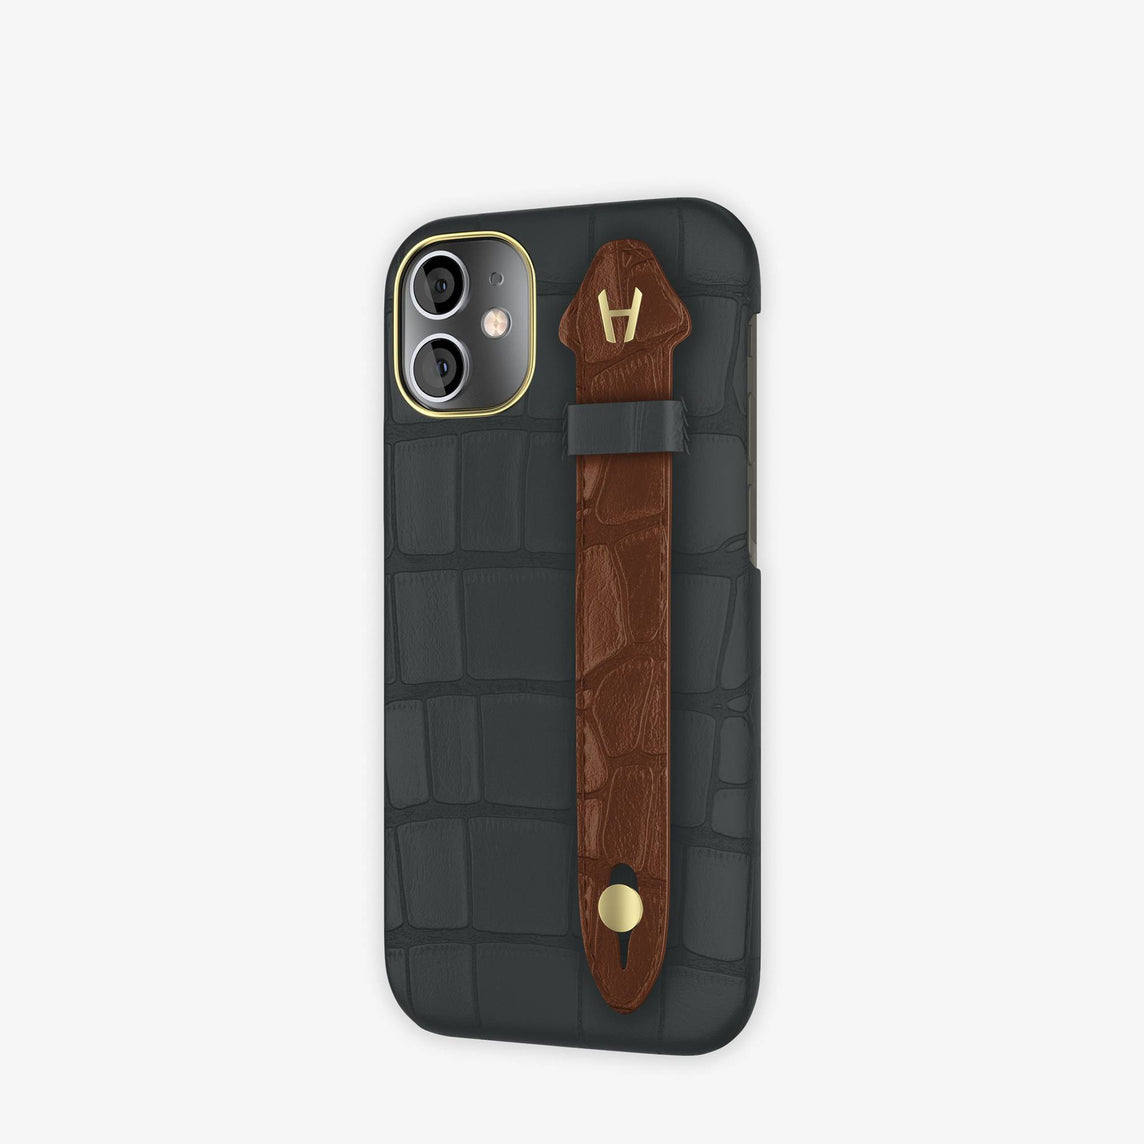 Alligator Side Finger Case iPhone 12 Mini | Anthracite/Brown Chocolat -Yellow Gold